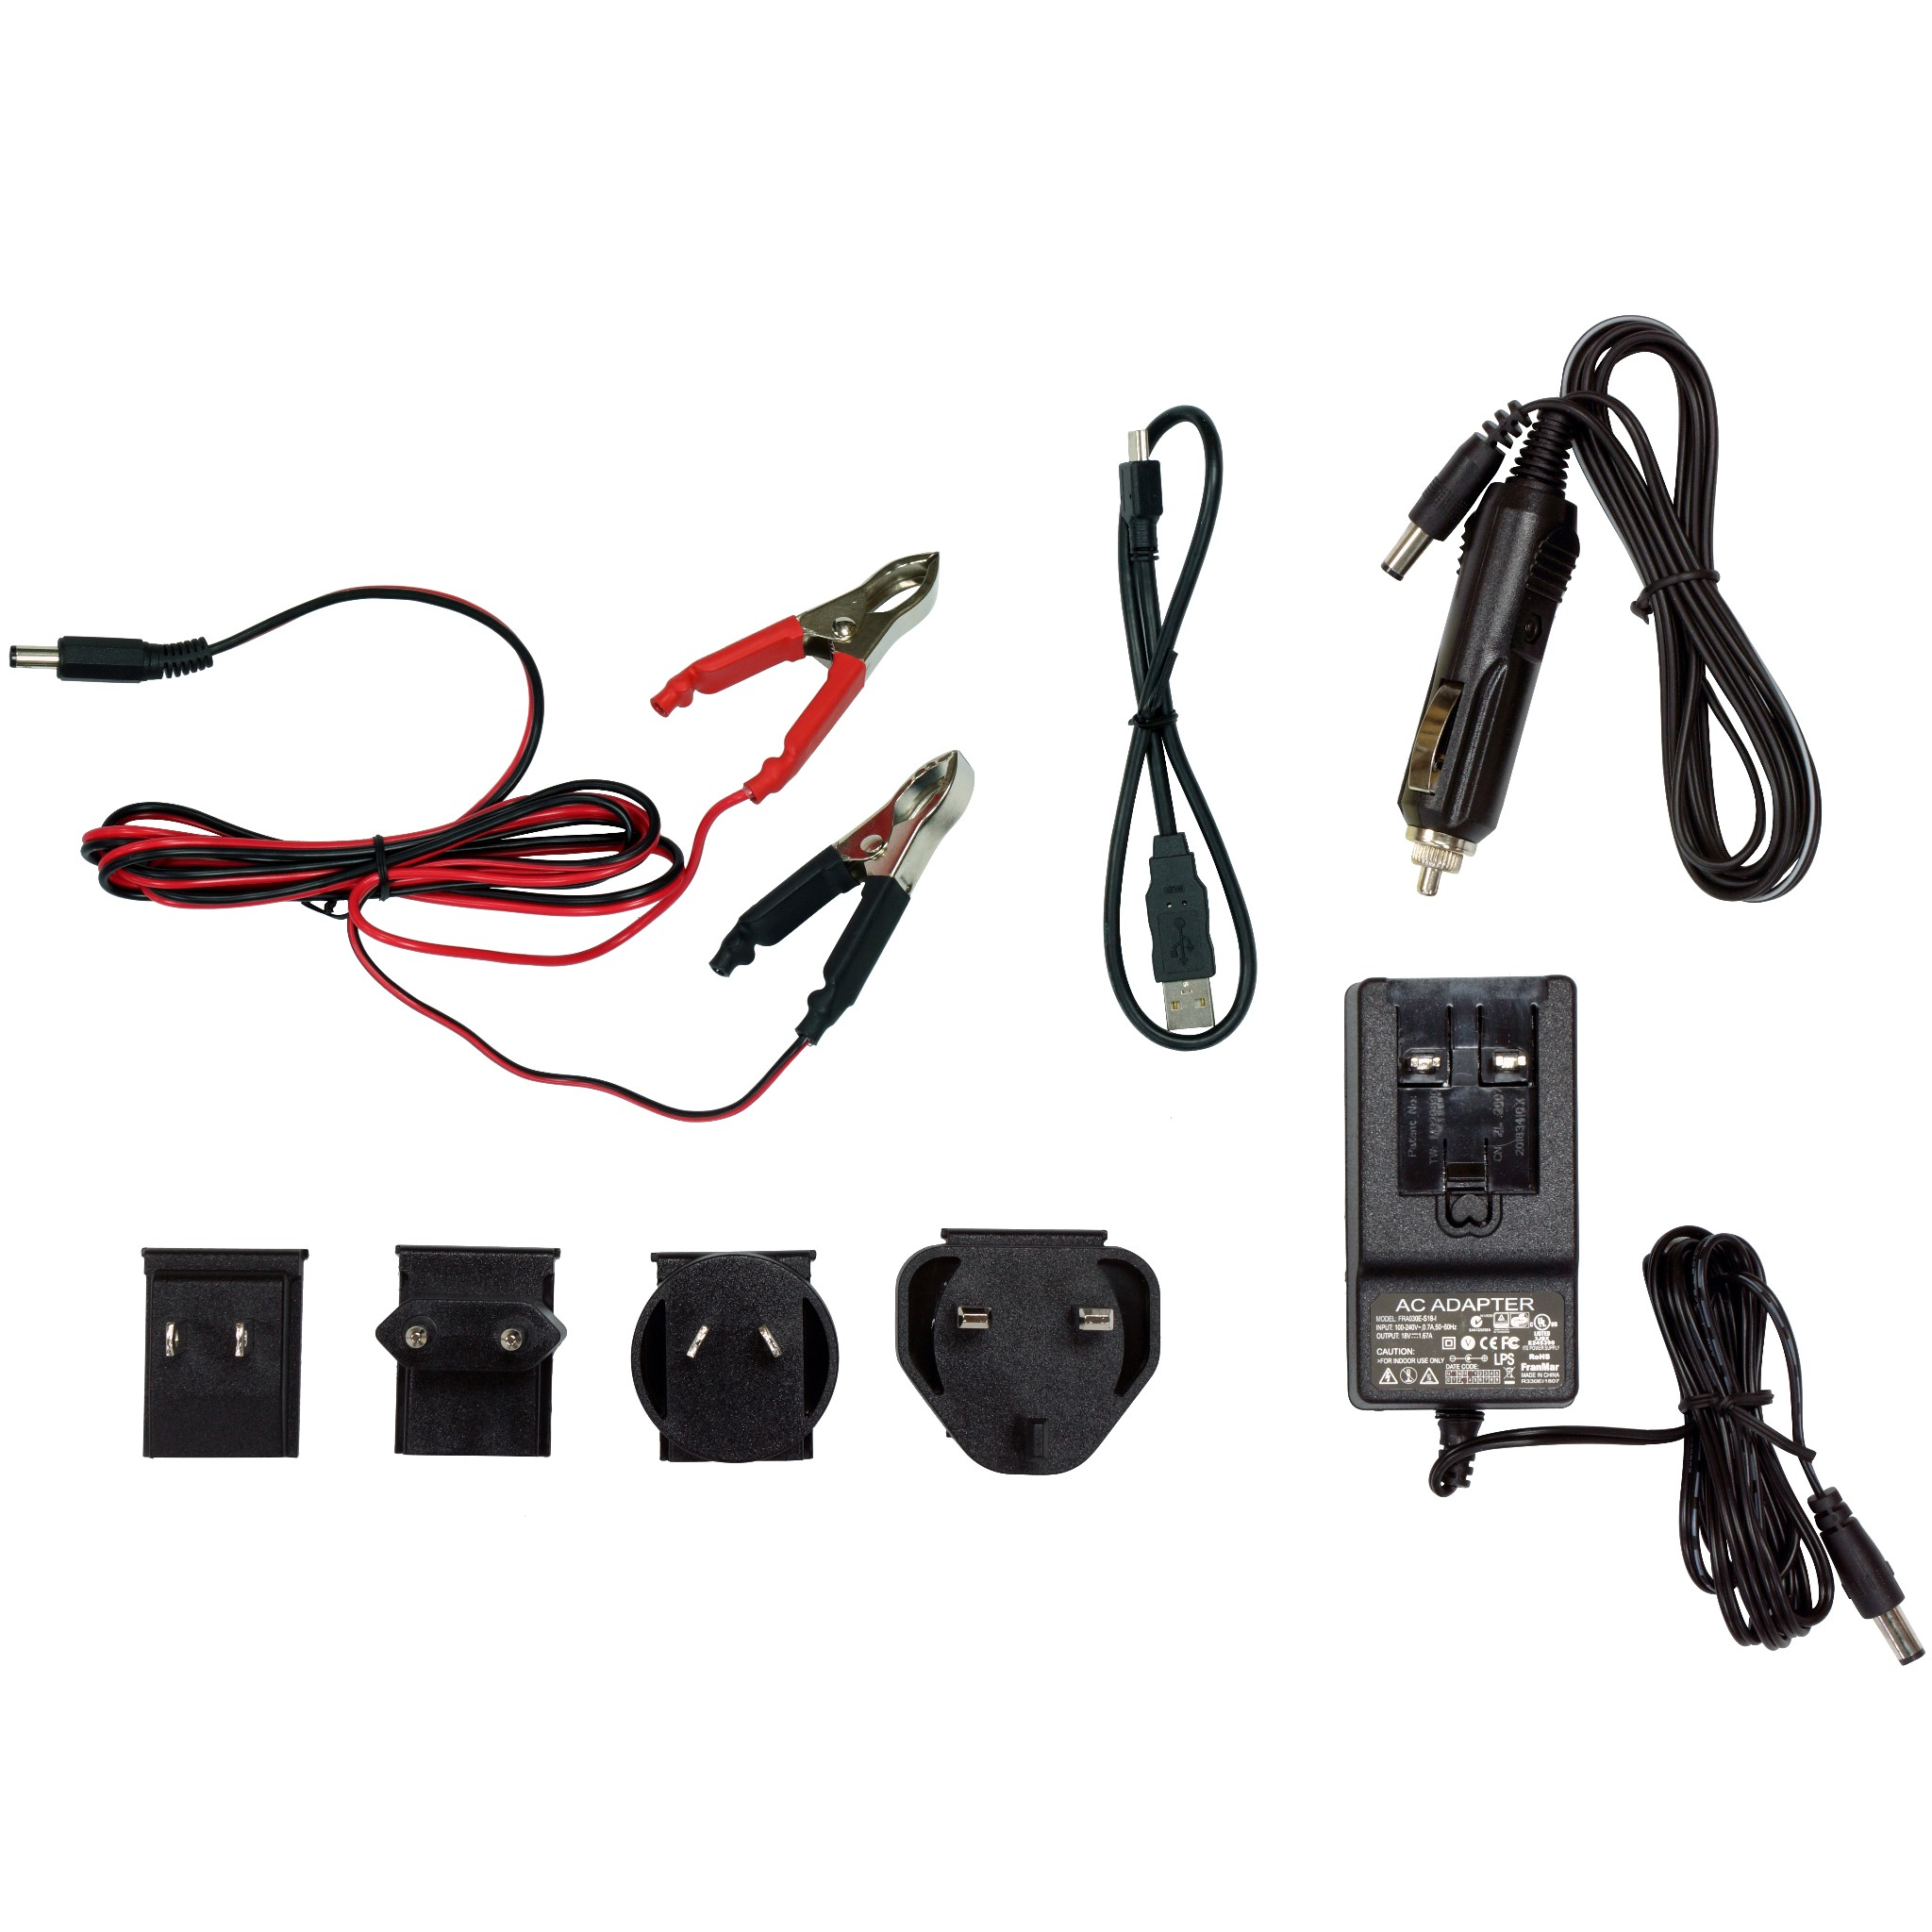 Minelab GPX 7000 Metal Detector Adaptor, Charger and Cable Kit 3011-0290 by Minelab